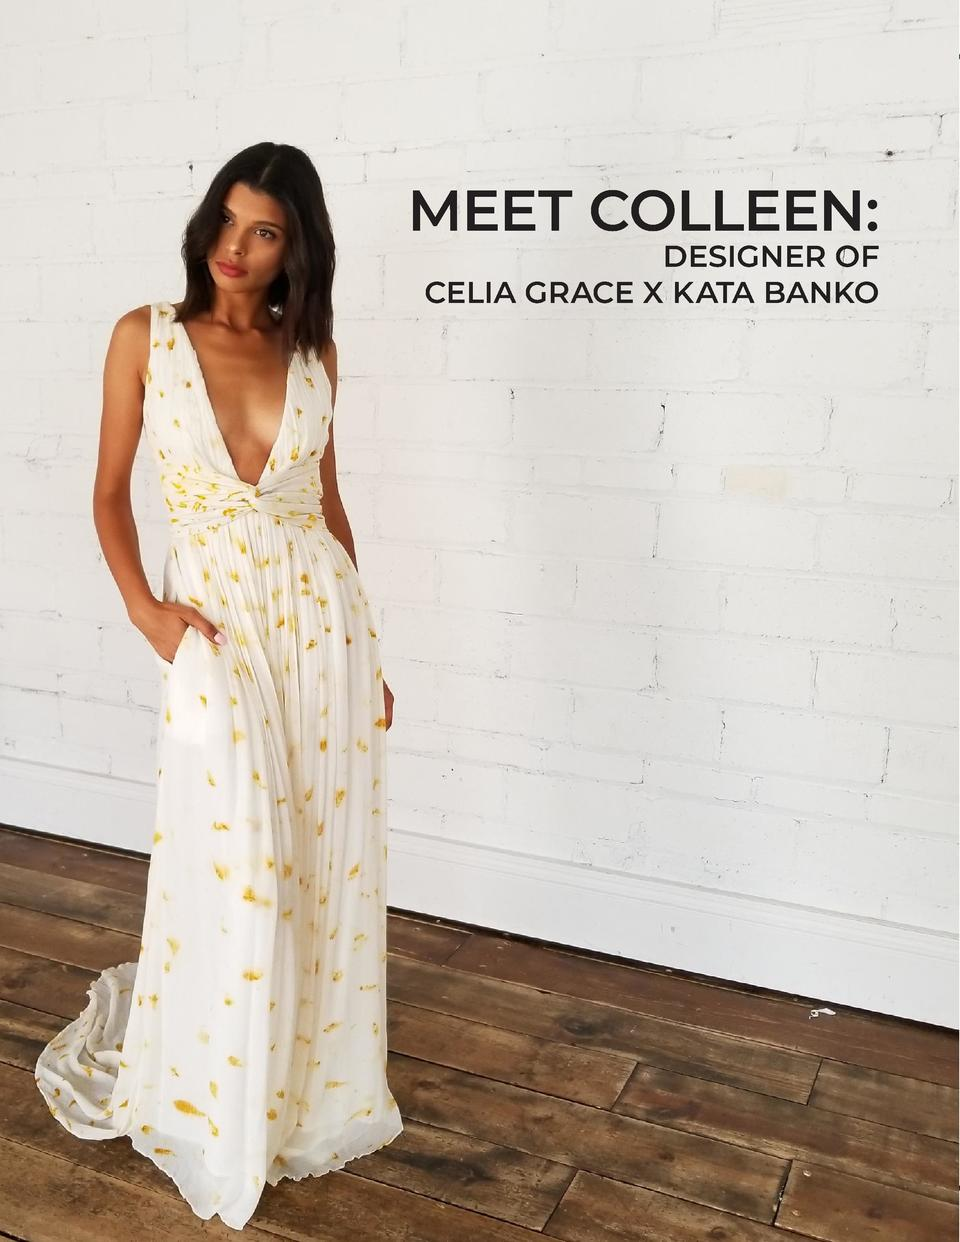 MEET COLLEEN  DESIGNER OF CELIA GRACE X KATA BANKO